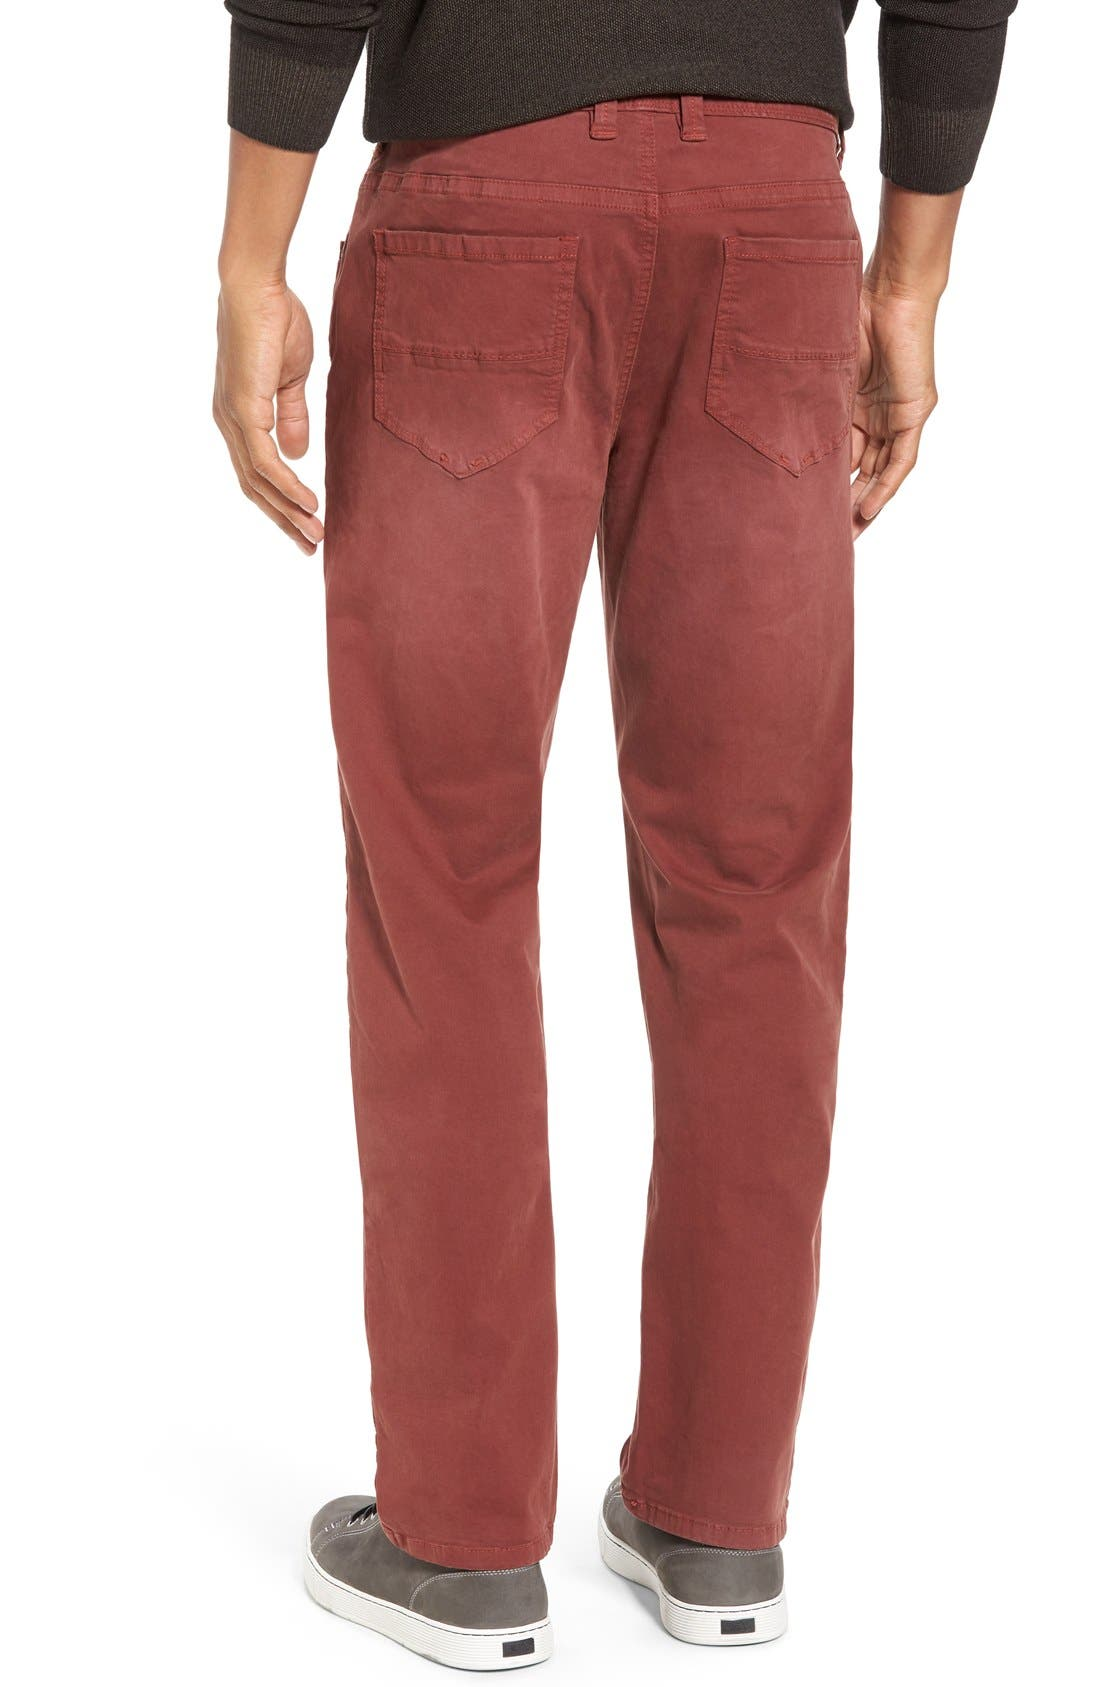 'Santiago' Washed Twill Pants,                             Alternate thumbnail 2, color,                             Maroon